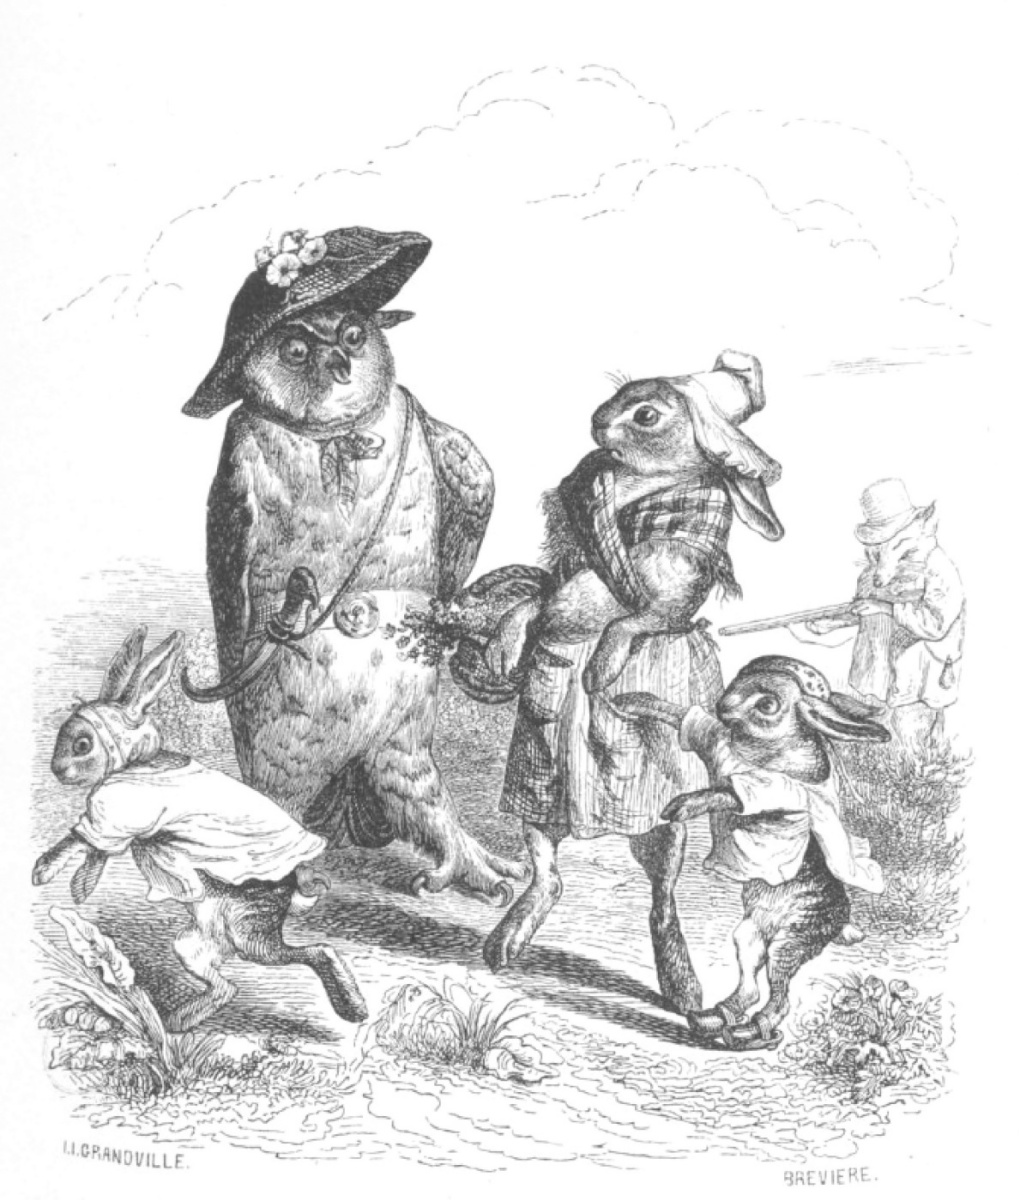 """Jean Inias Isidore (Gerard) Granville. Big and terrible bird. """"Scenes of public and private life of animals"""""""